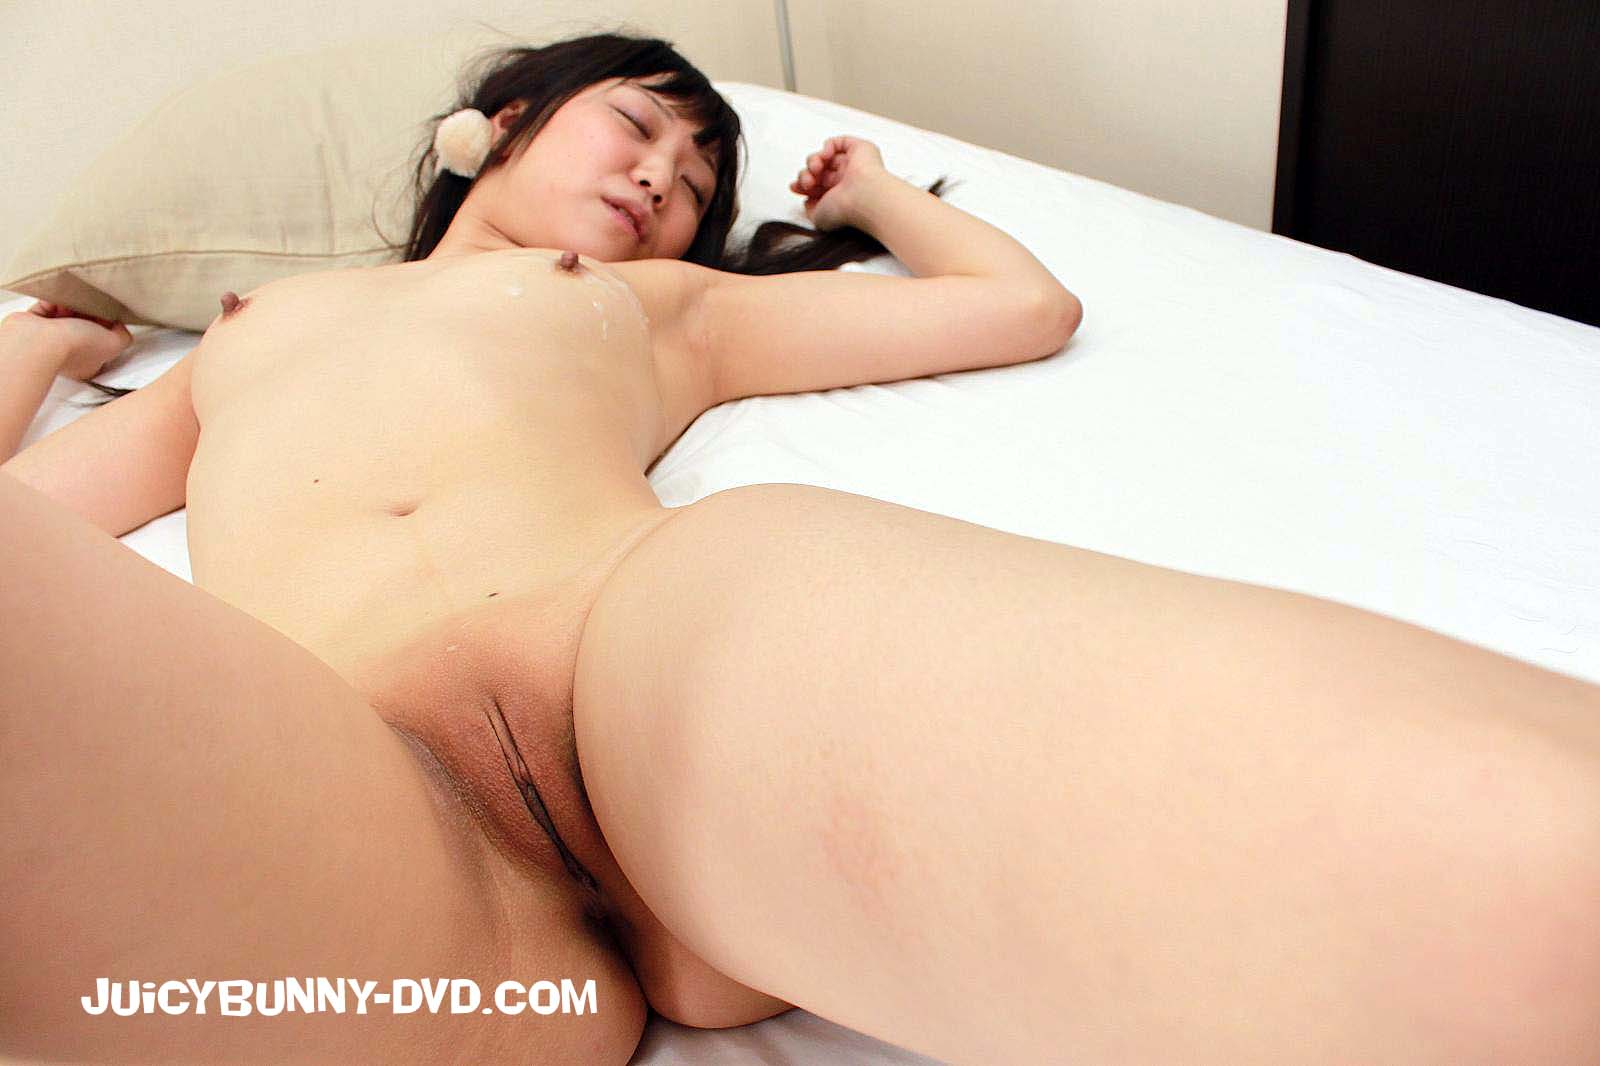 Japanese Teen Miwa Shares her Tight and Shaved Pussy